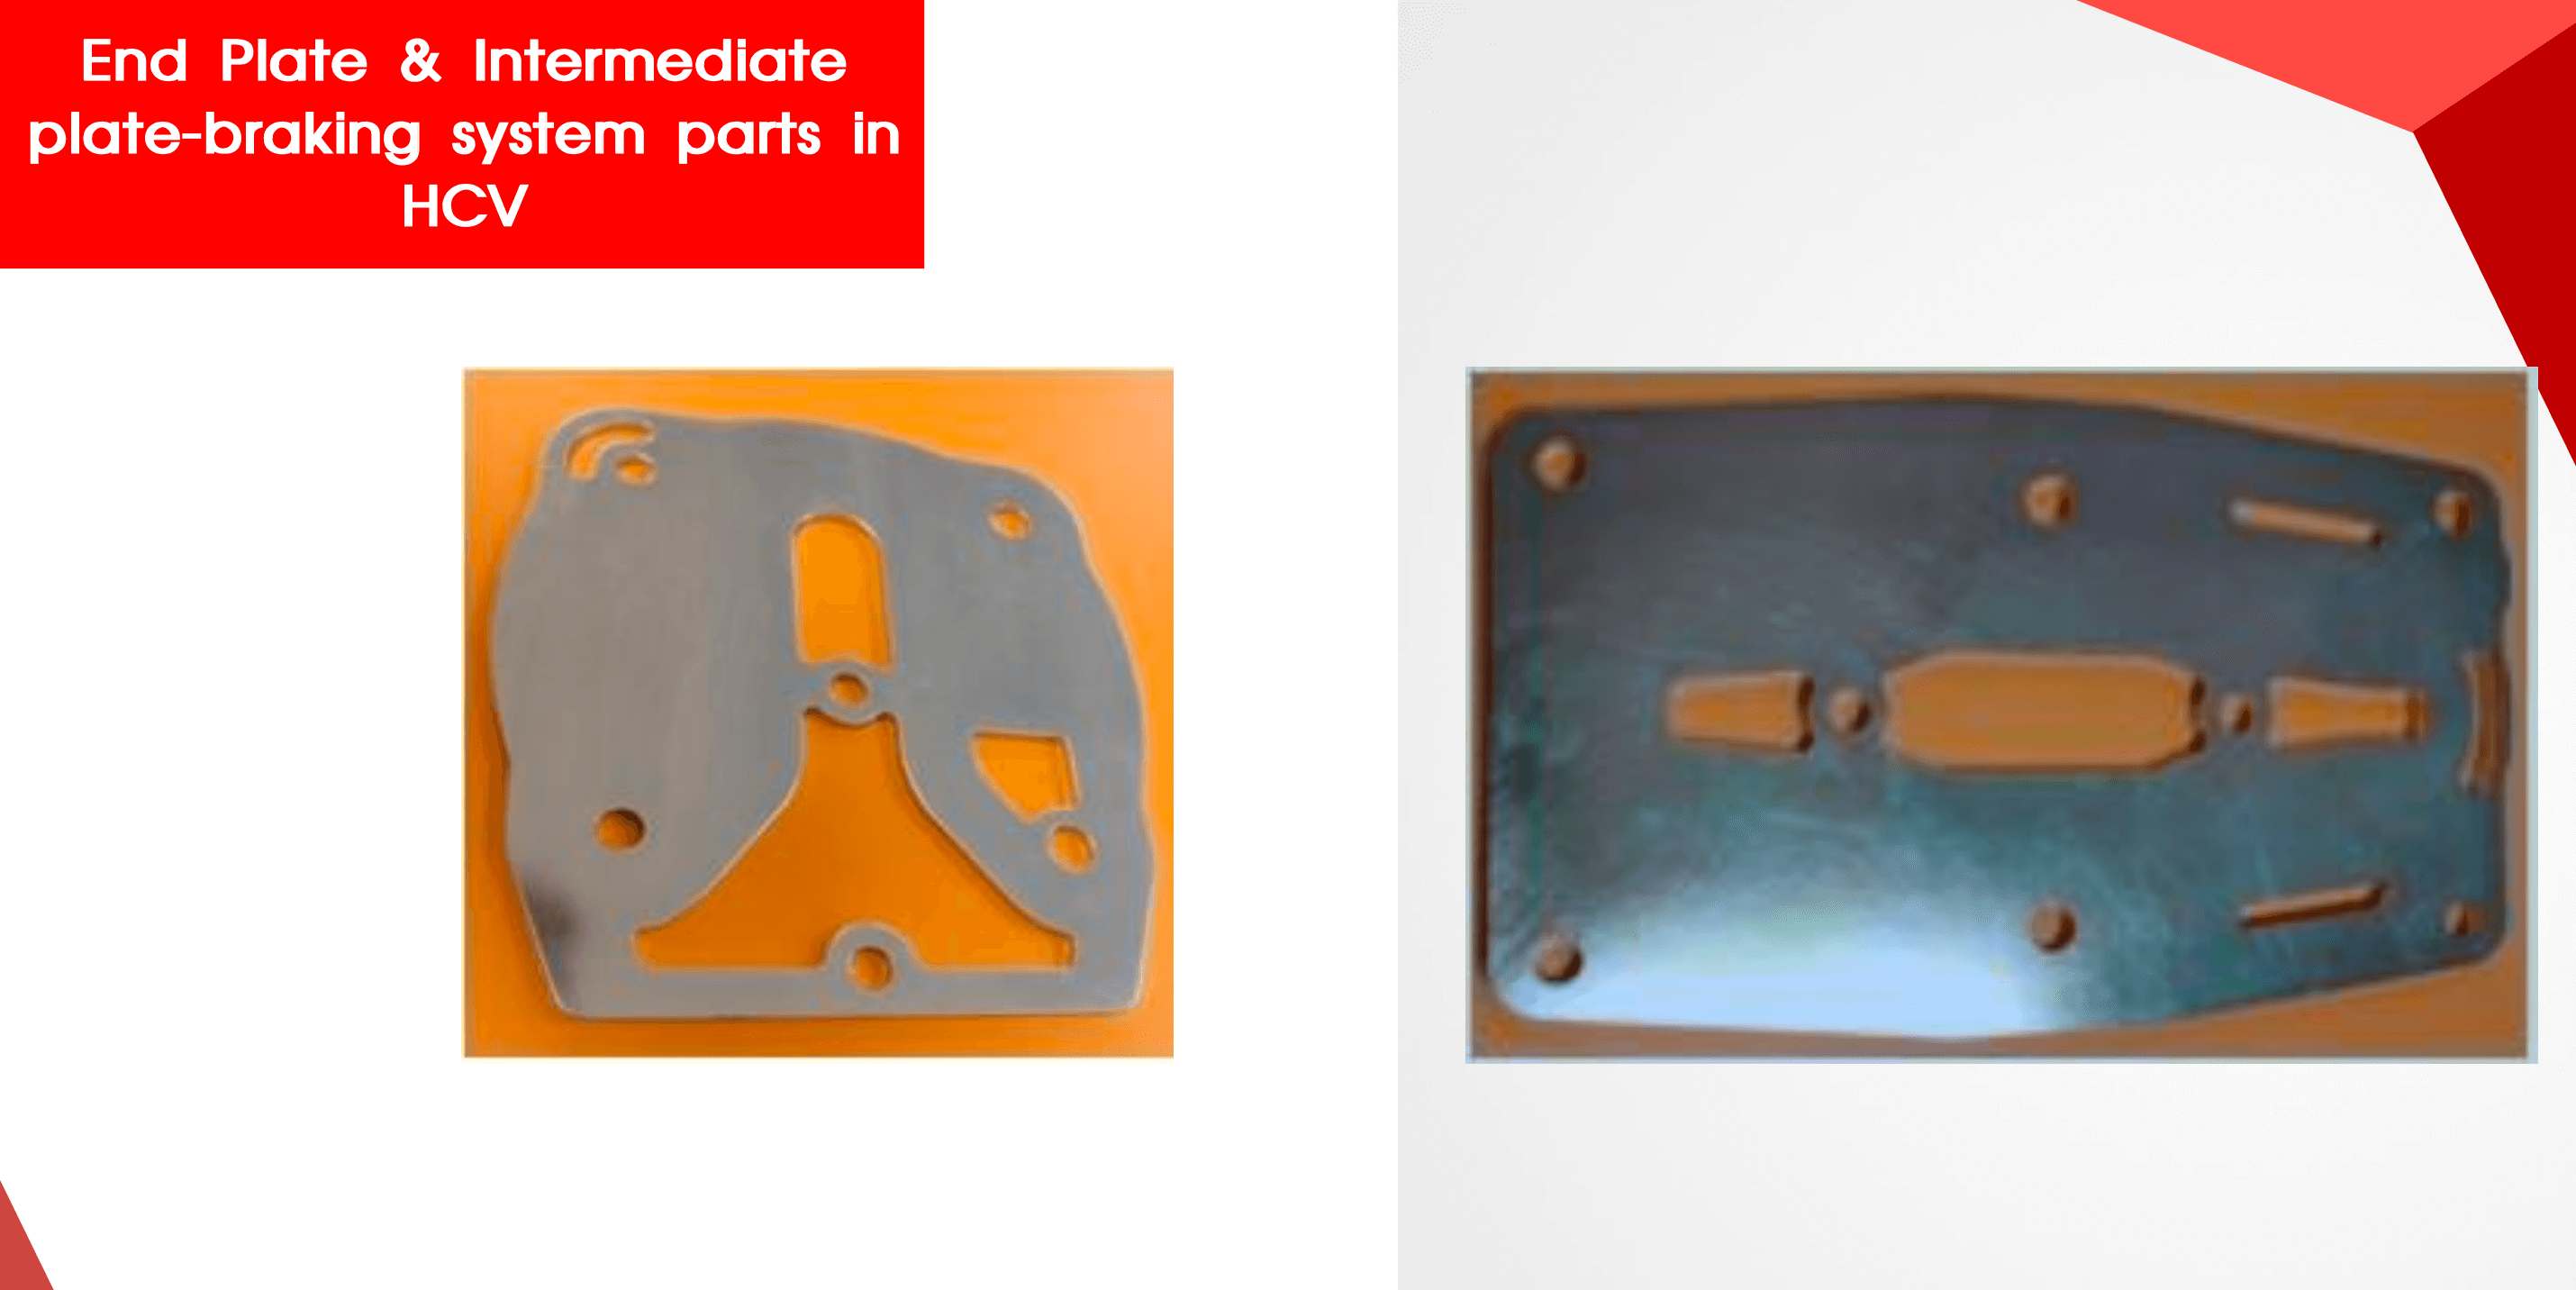 End plate and intermediate plate